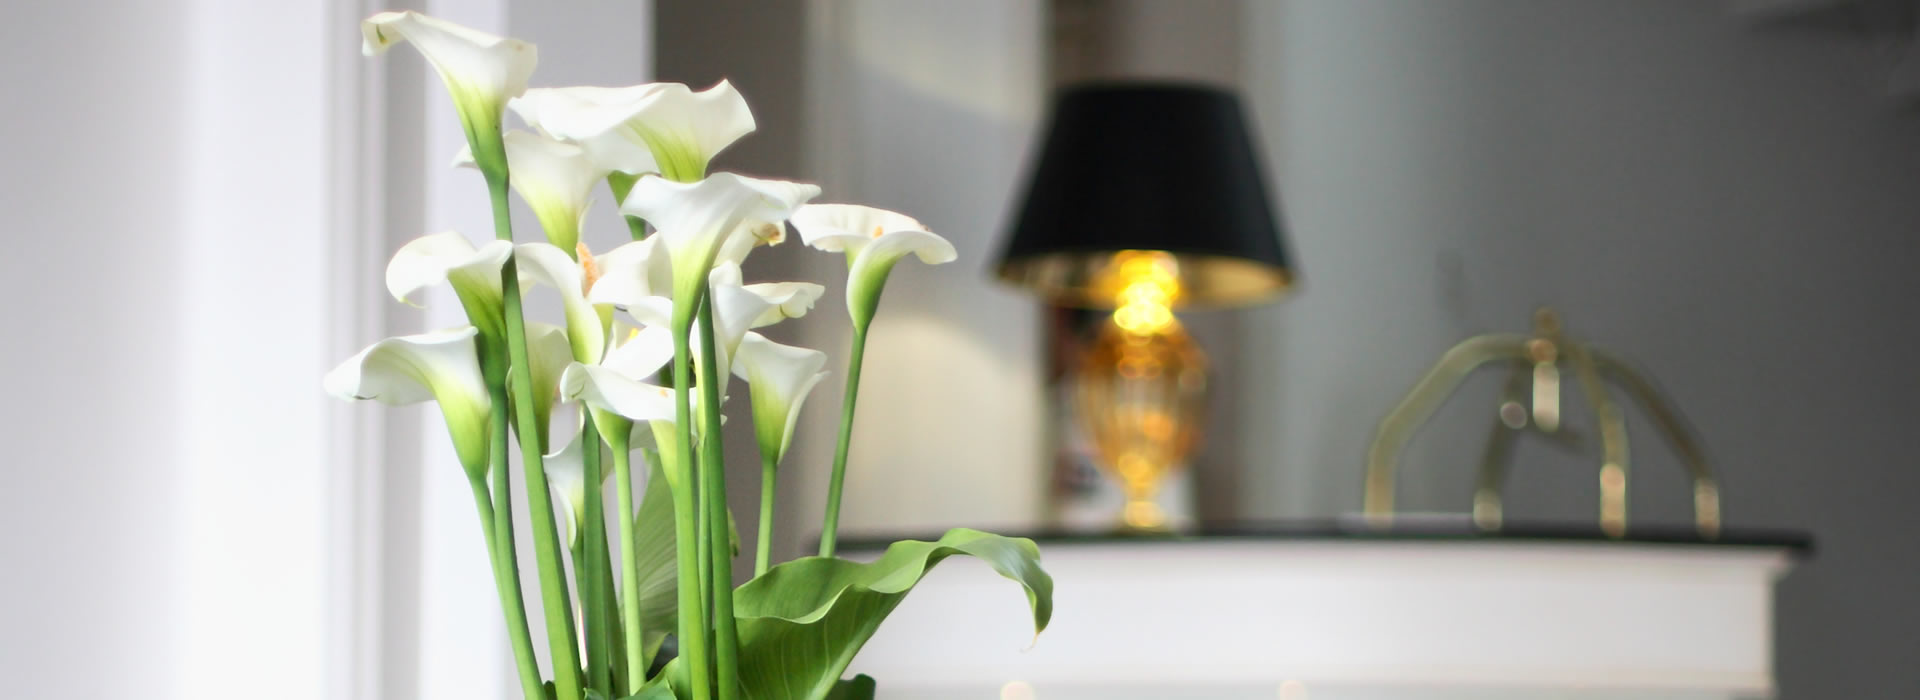 Corporate flowers - calla lilies in a hotel reception